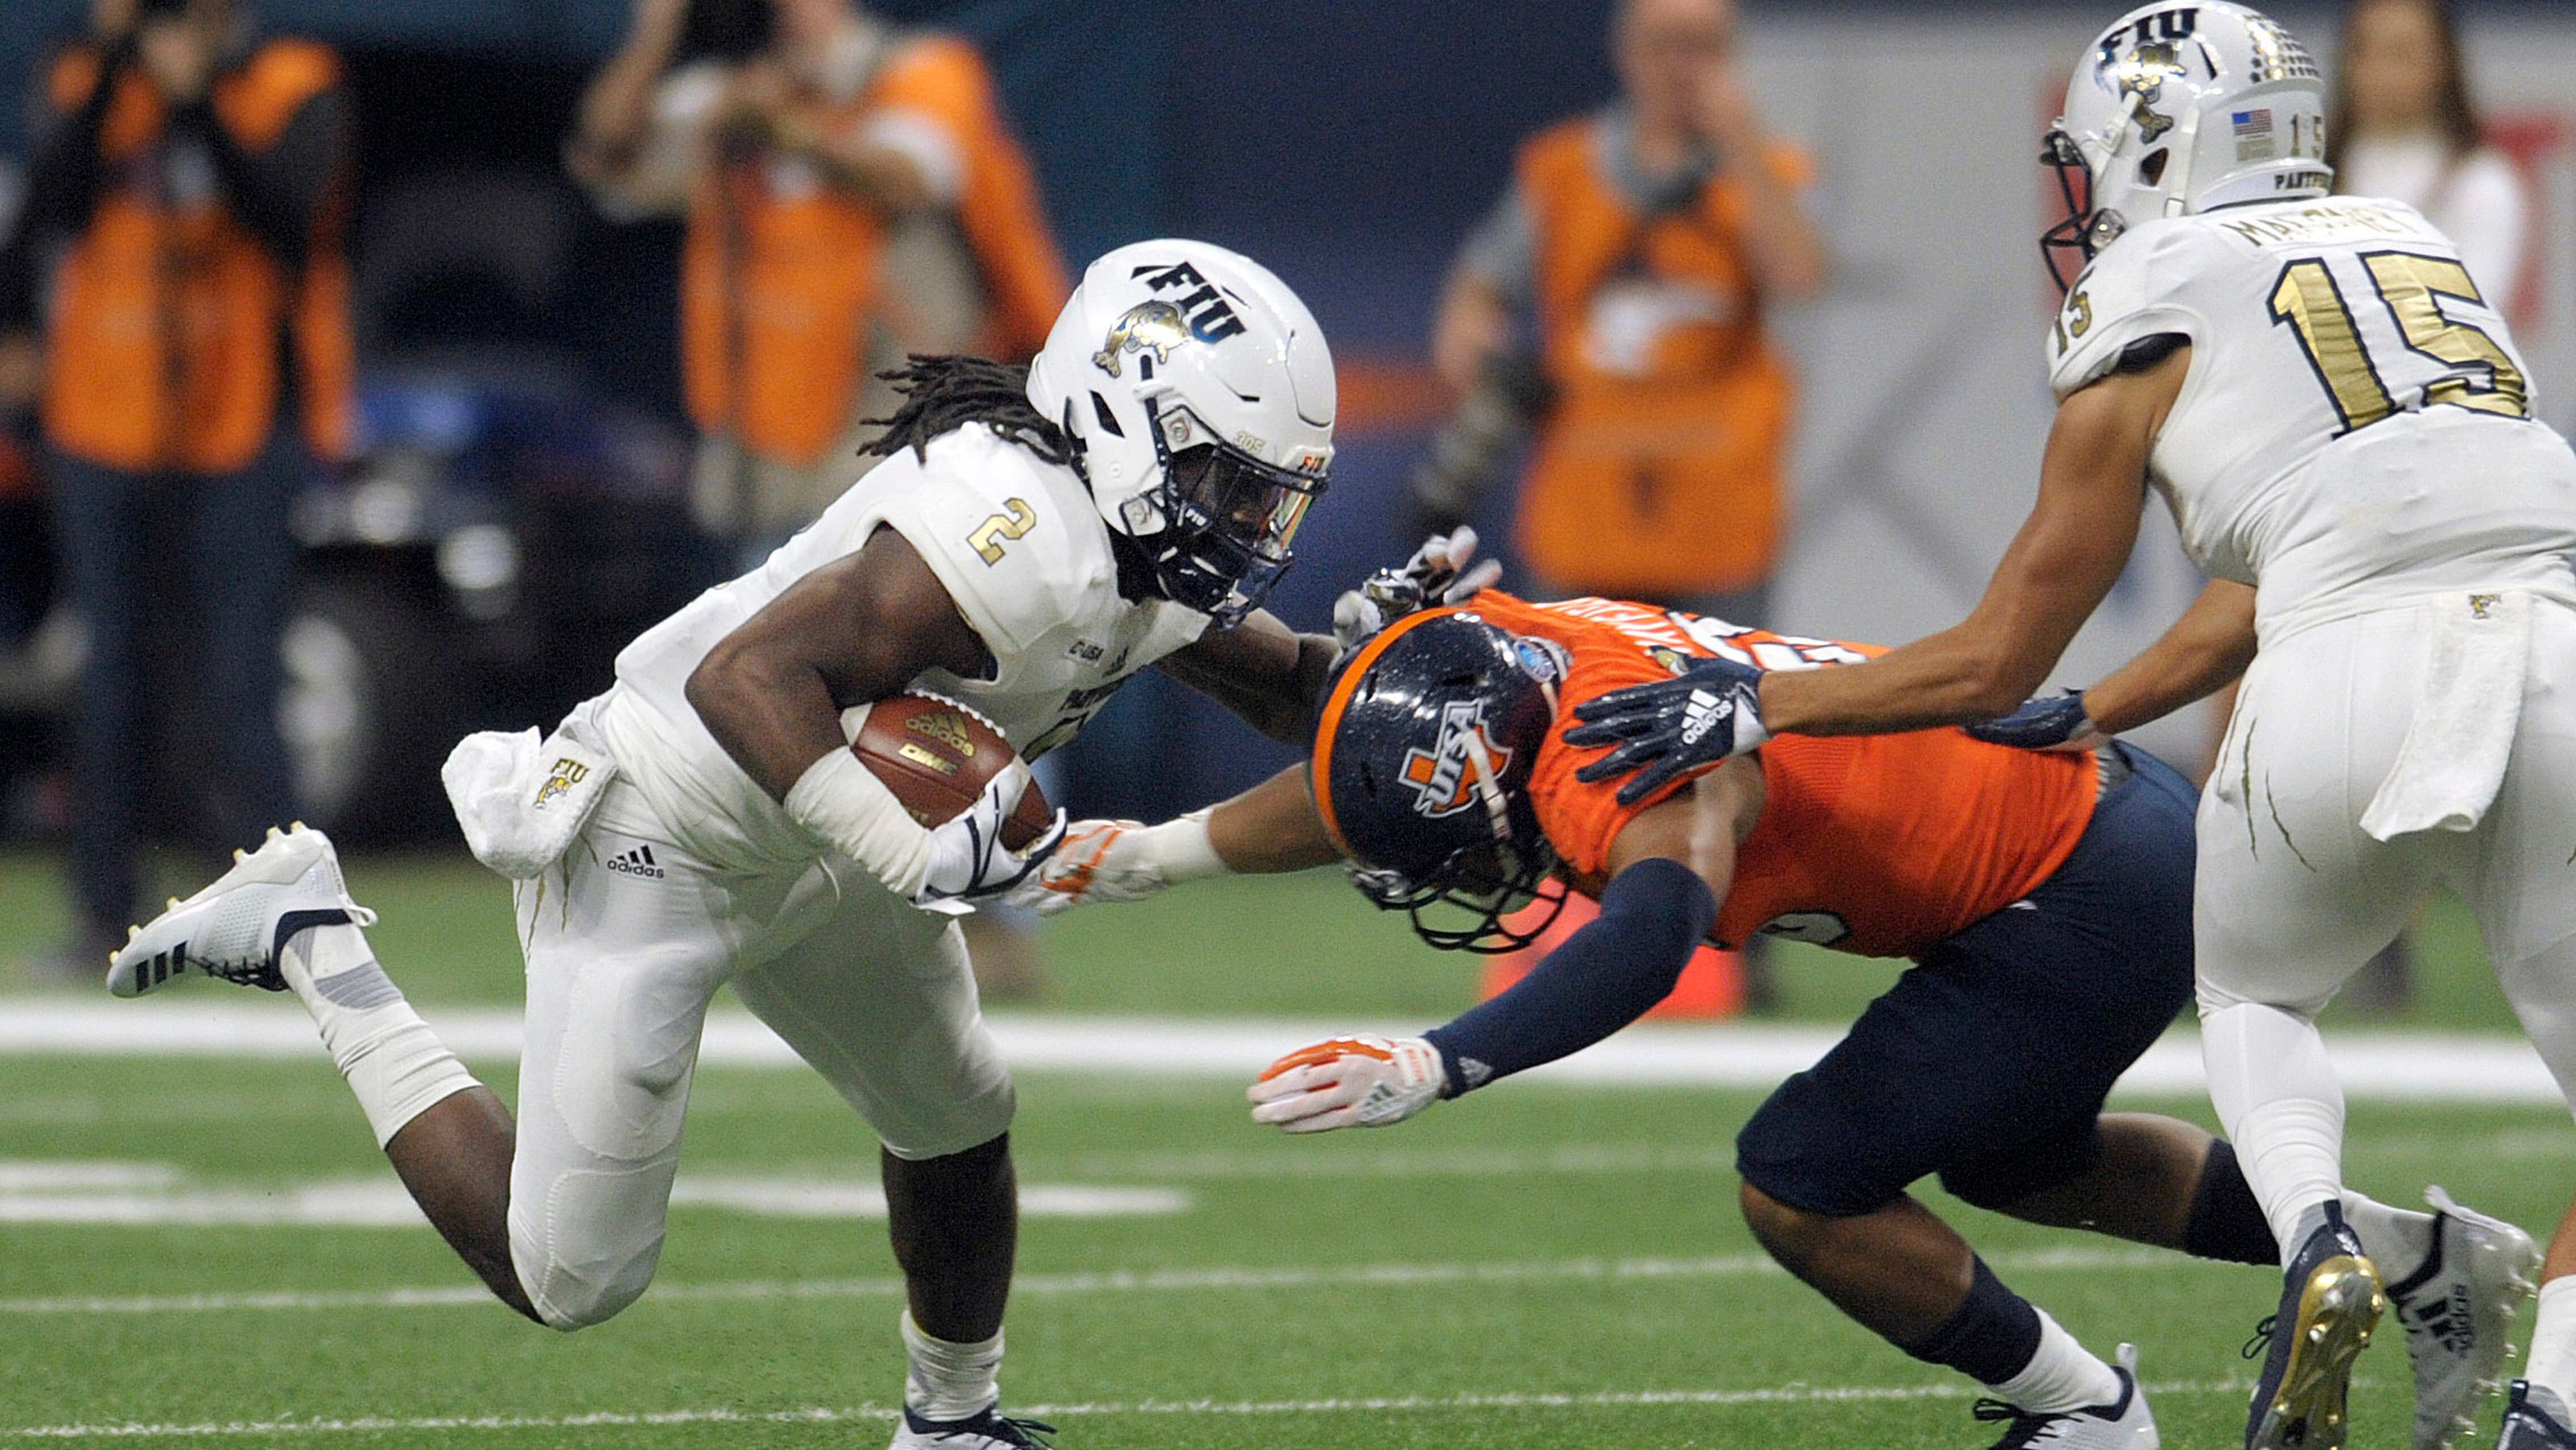 Second Chance Fiu S Anthony Jones Reflective After Shooting